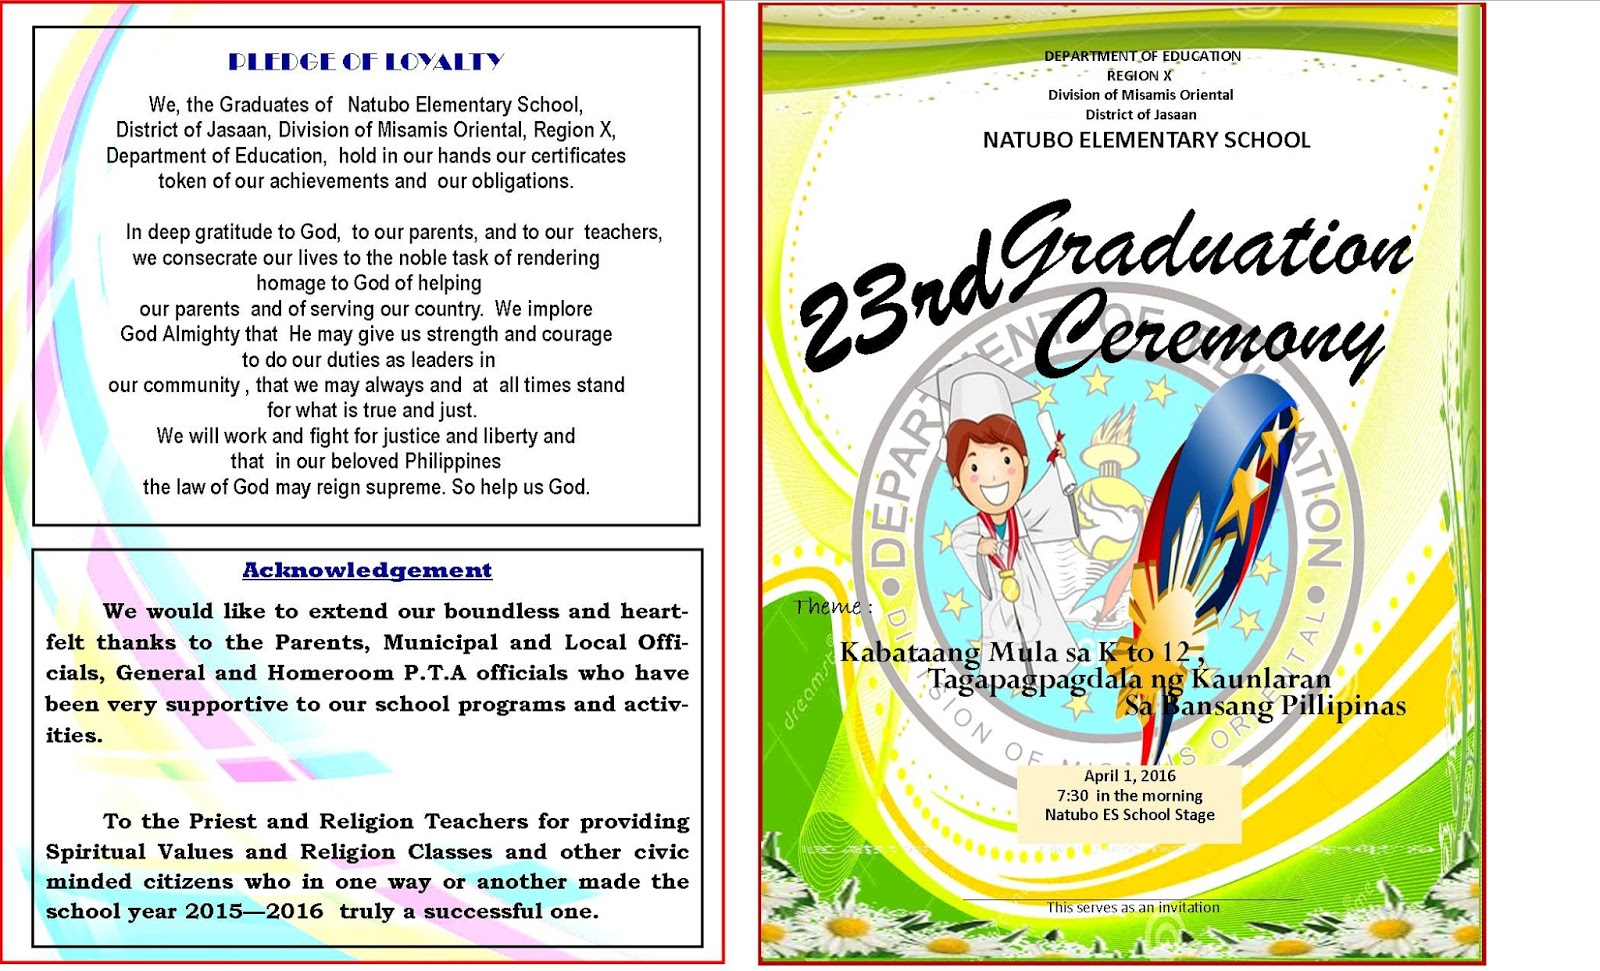 2015 2016 graduation program new template deped lps 2015 2016 graduation program new template yadclub Image collections